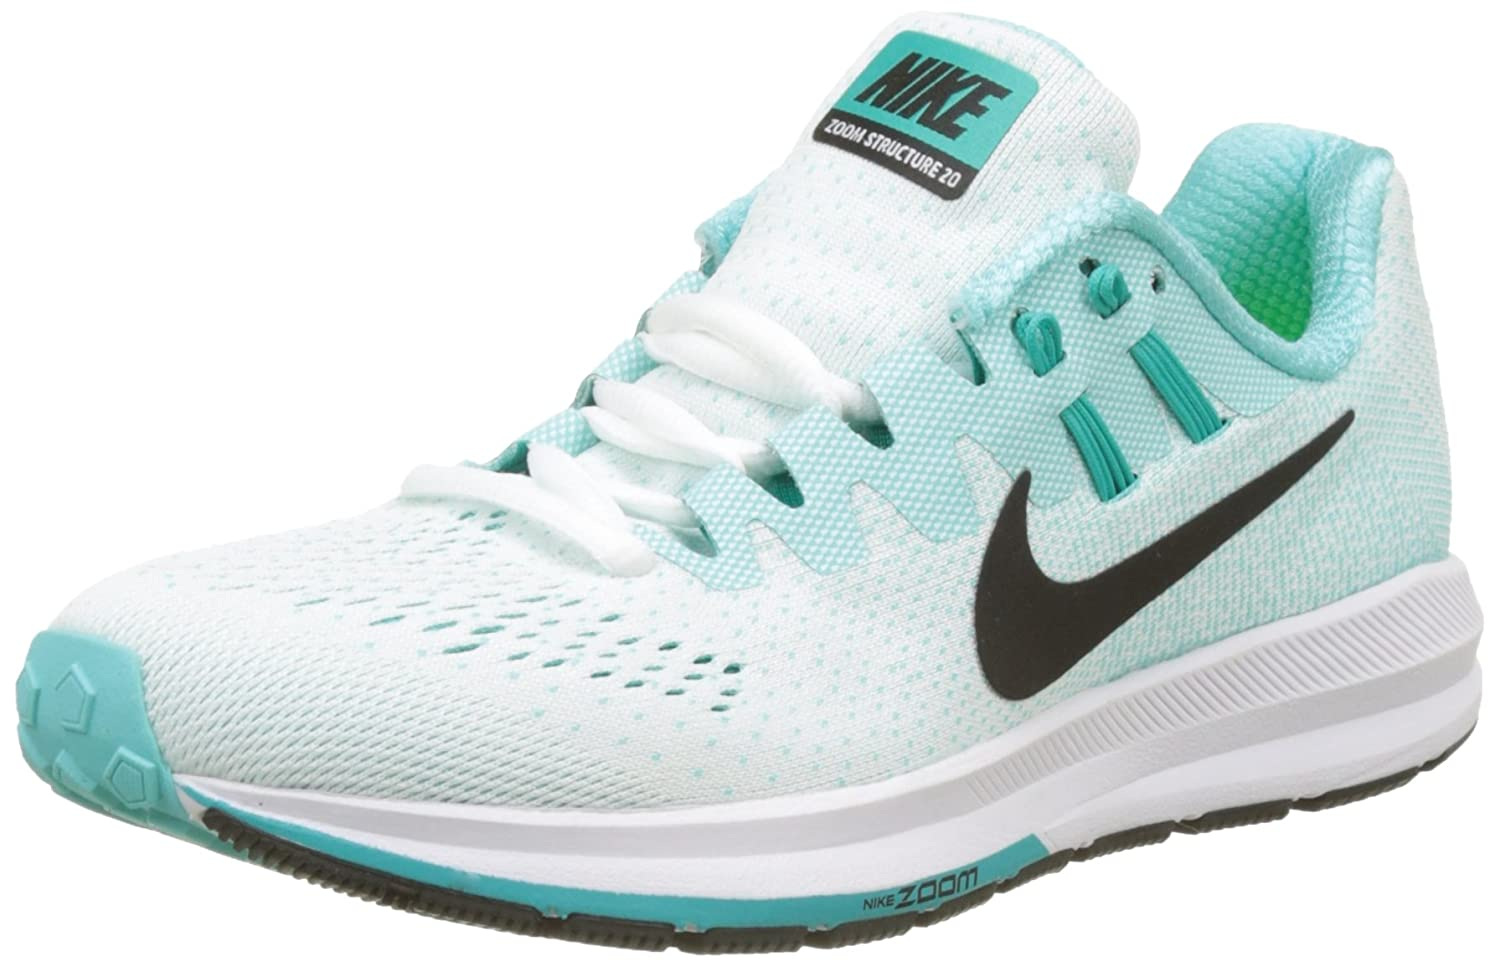 Nike Wmns Air Zoom Structure 20, Zapatillas de Running para Mujer 40.5 EU|Turquesa (White/Black/Aurora Green/Clear Jade/Igloo)